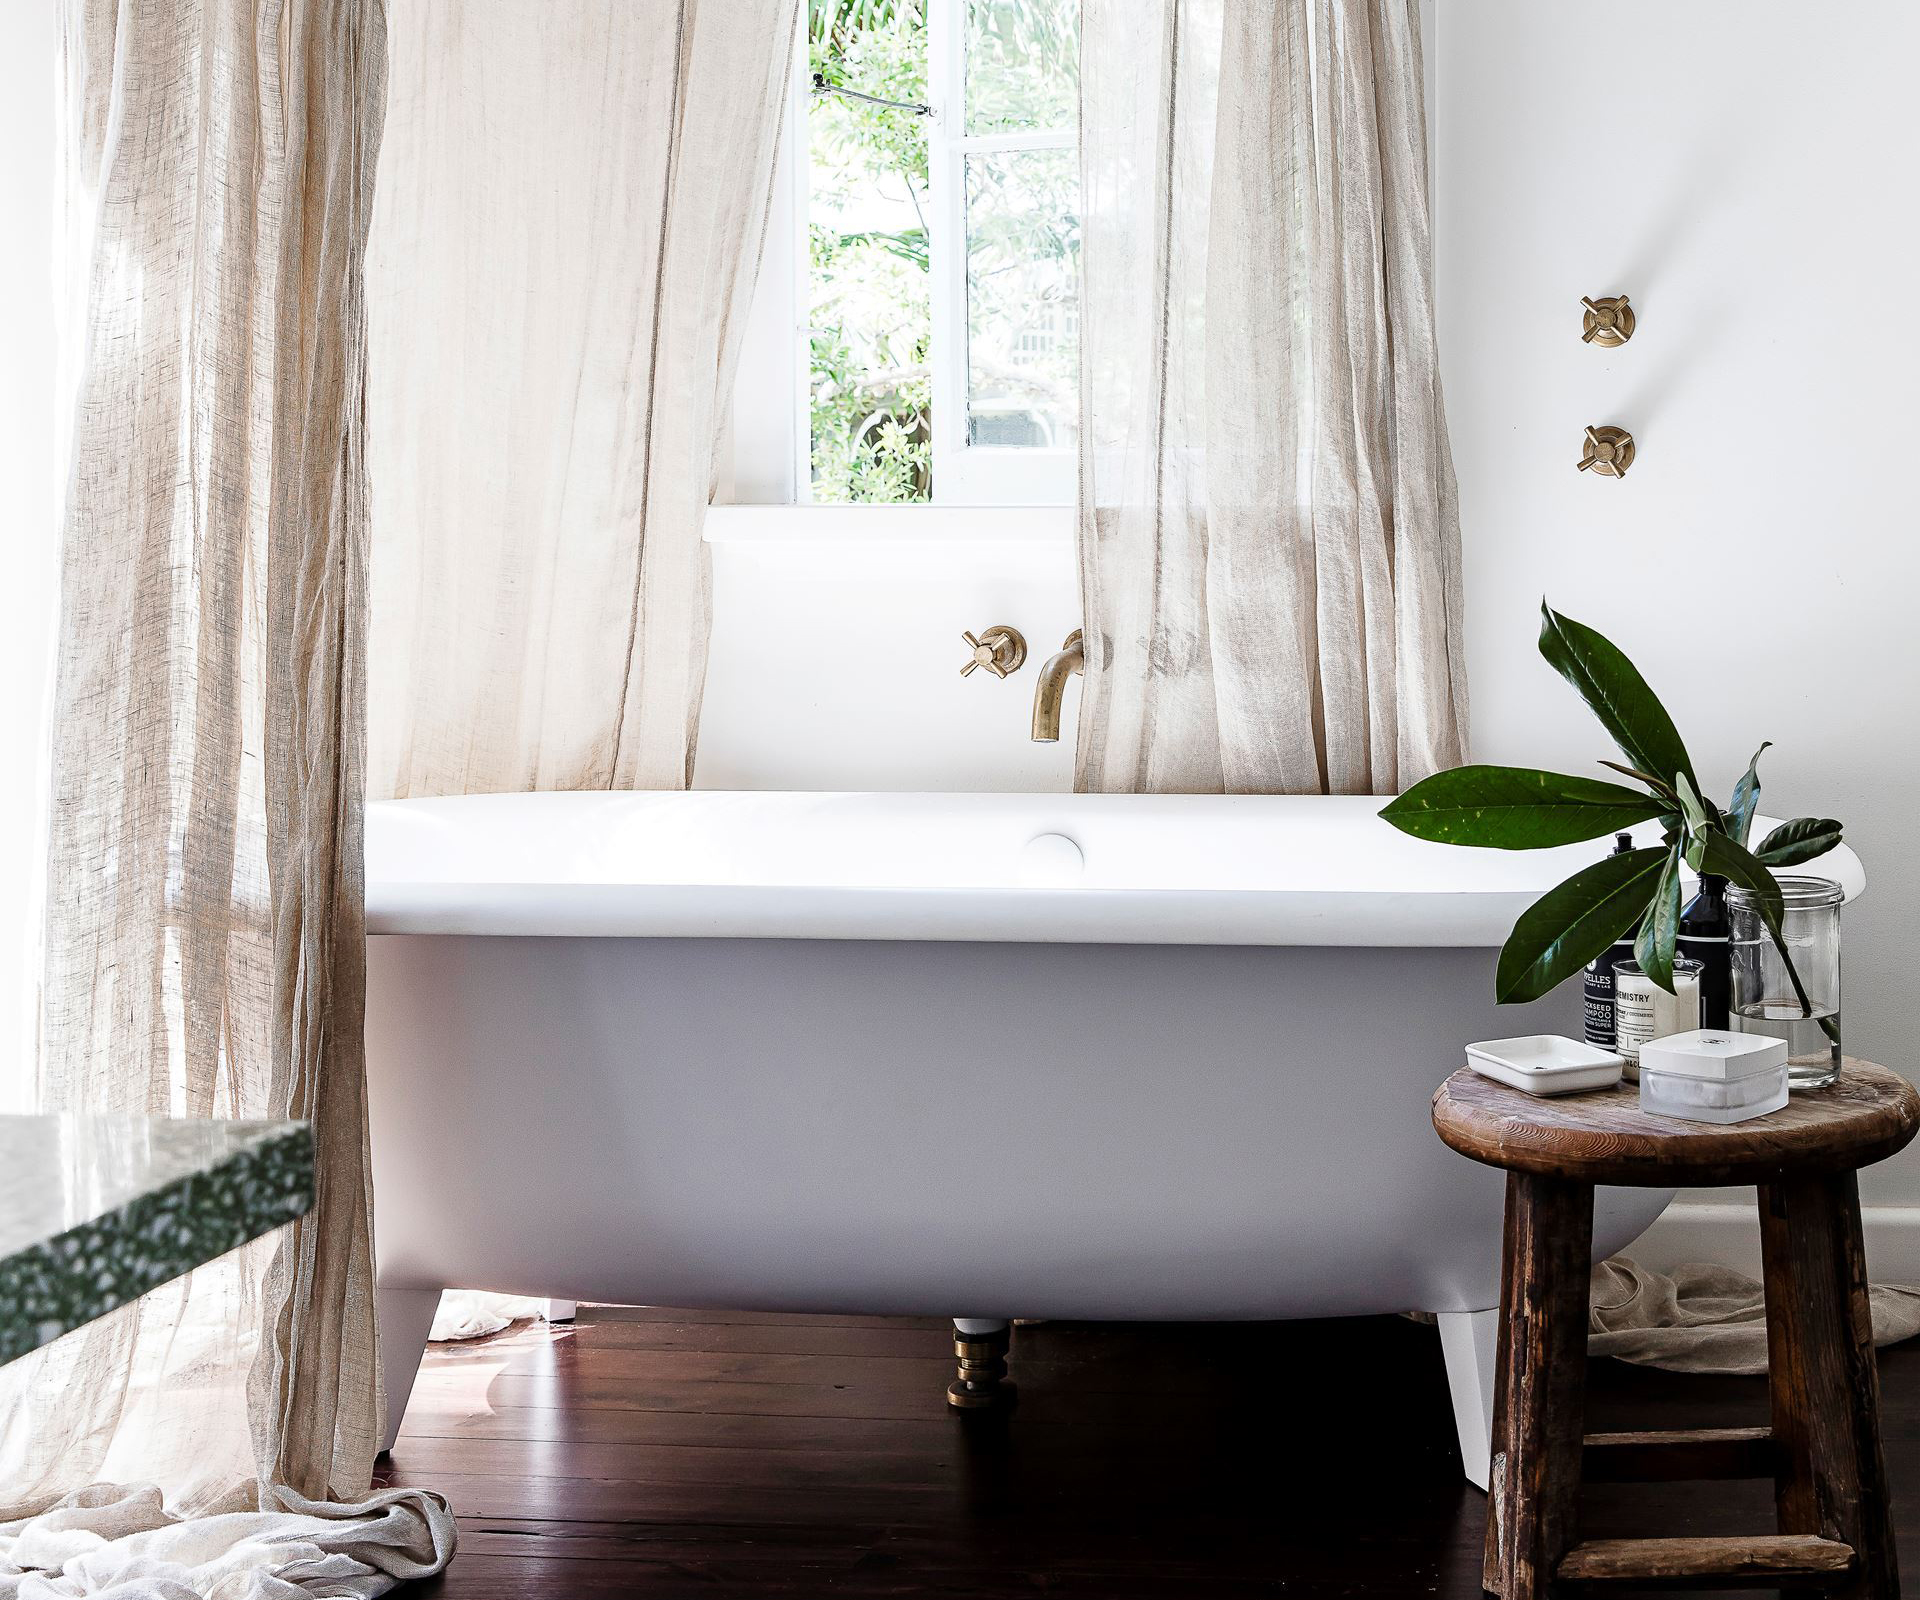 20 Beautiful Bathrooms To Inspire